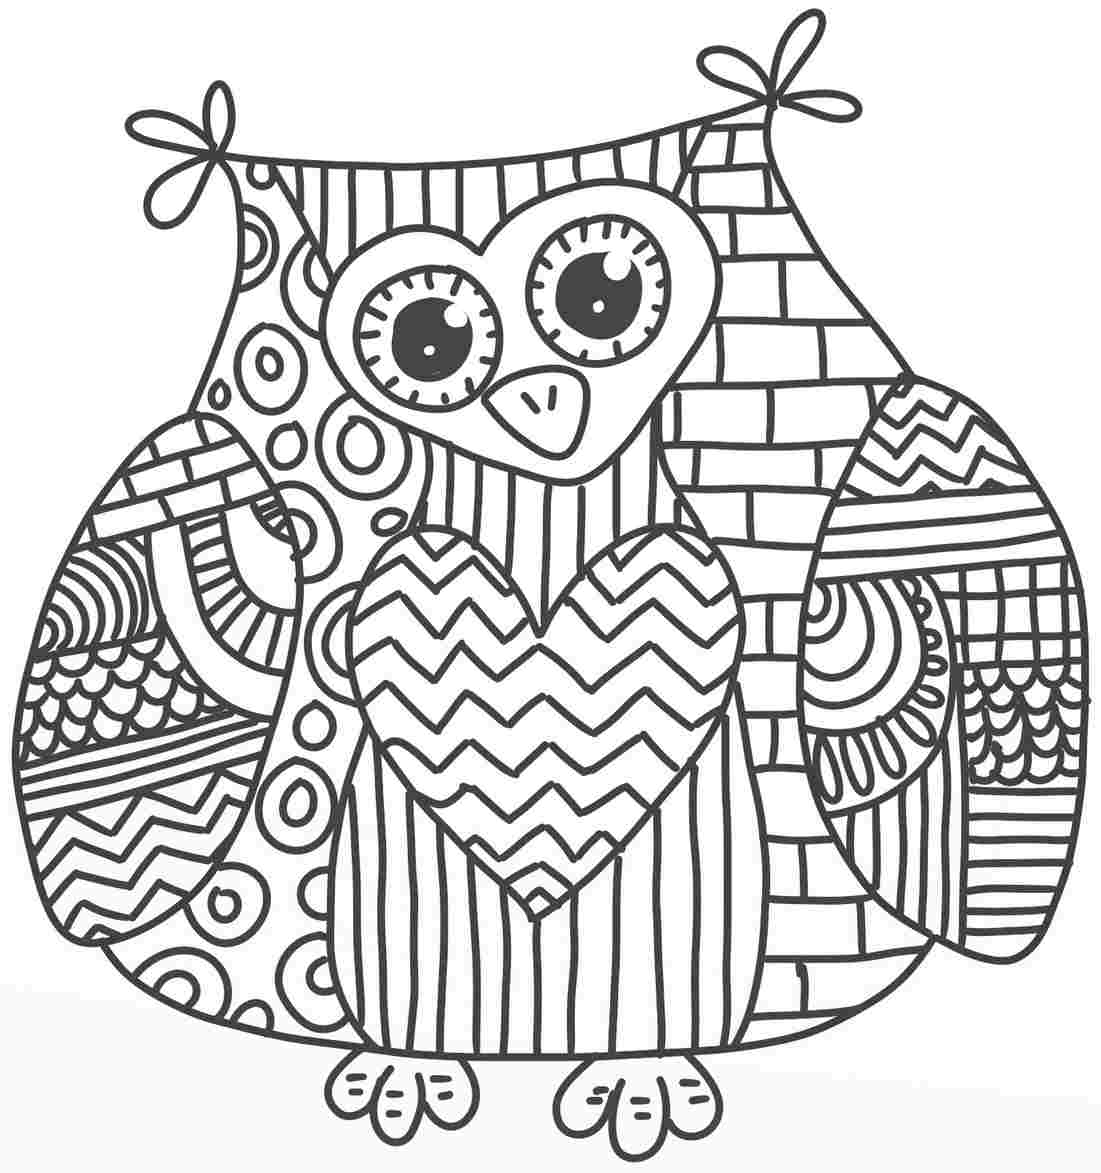 Owl_Coloring_Pages_To_Print_07